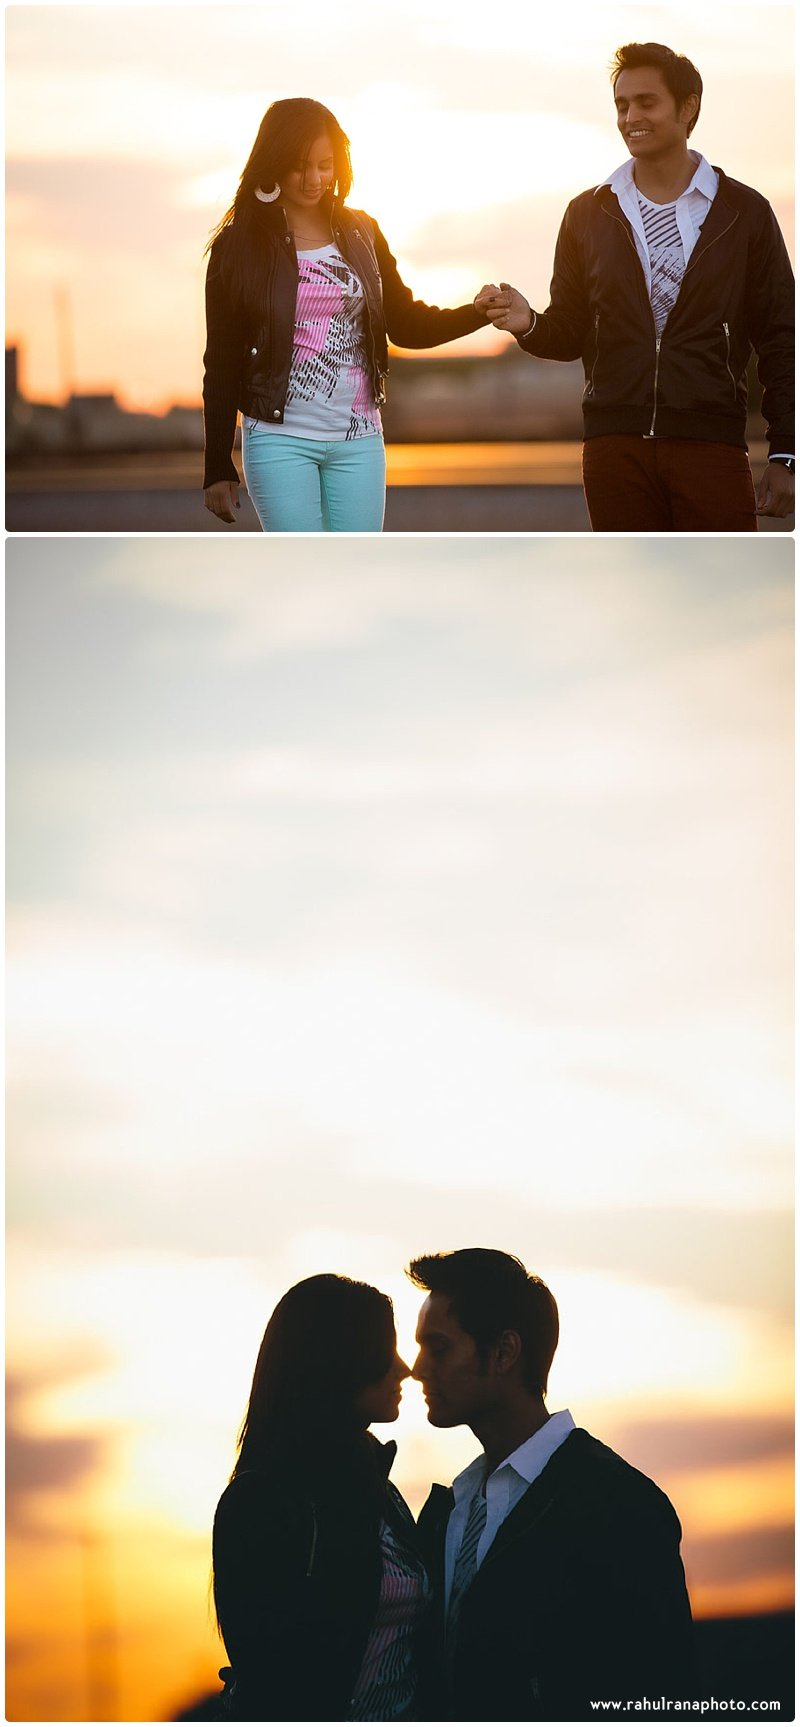 Rina Sunny - train tracks sunset holding hands engagement - Rahul Rana Photography